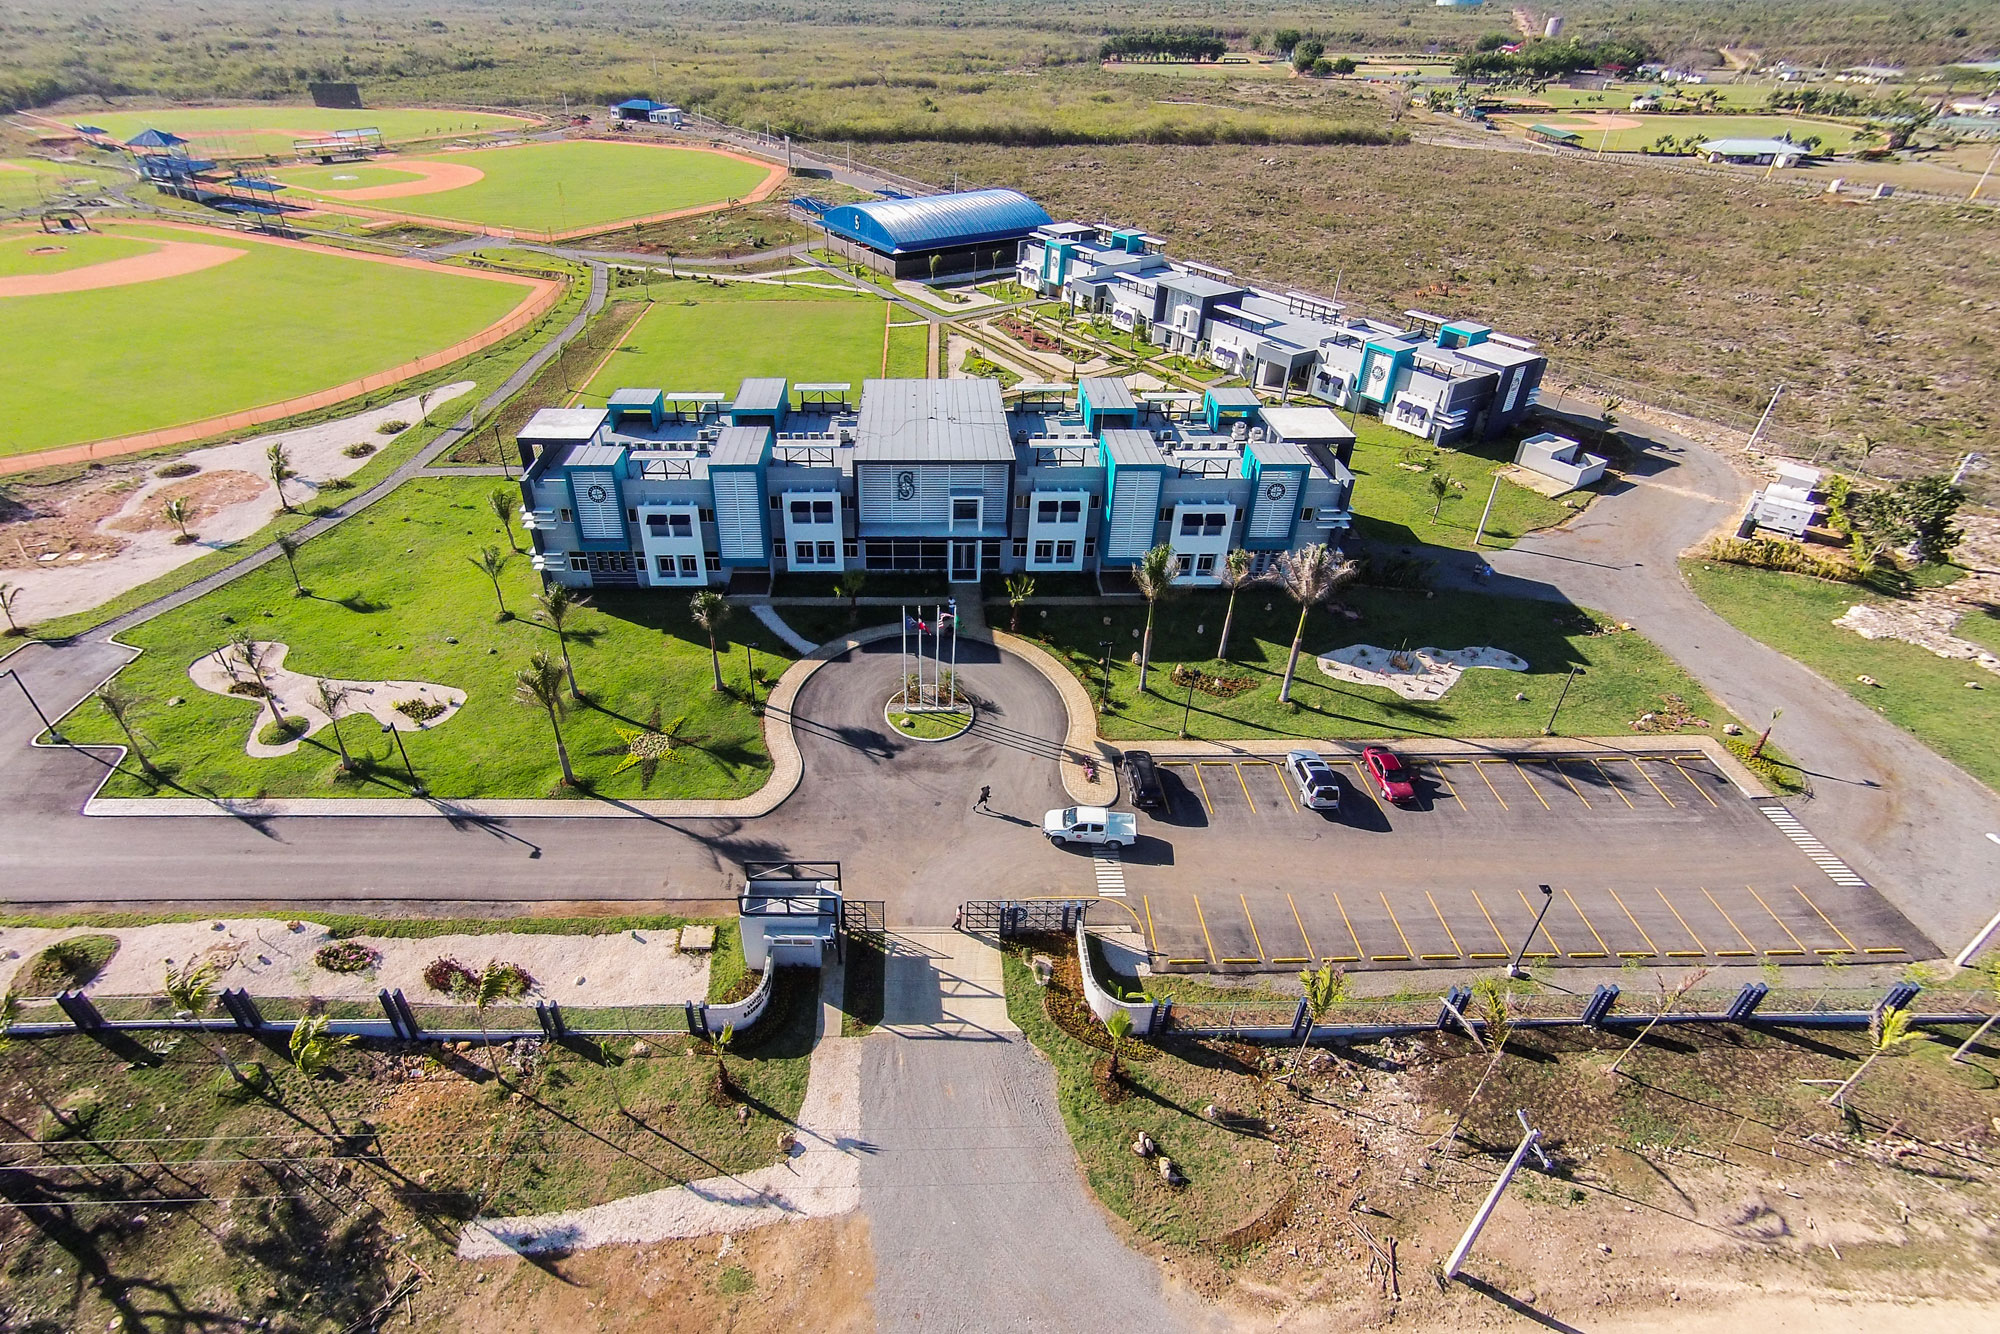 Paric's Project in the Dominican Republic for the Seattle Mariners baseball team.